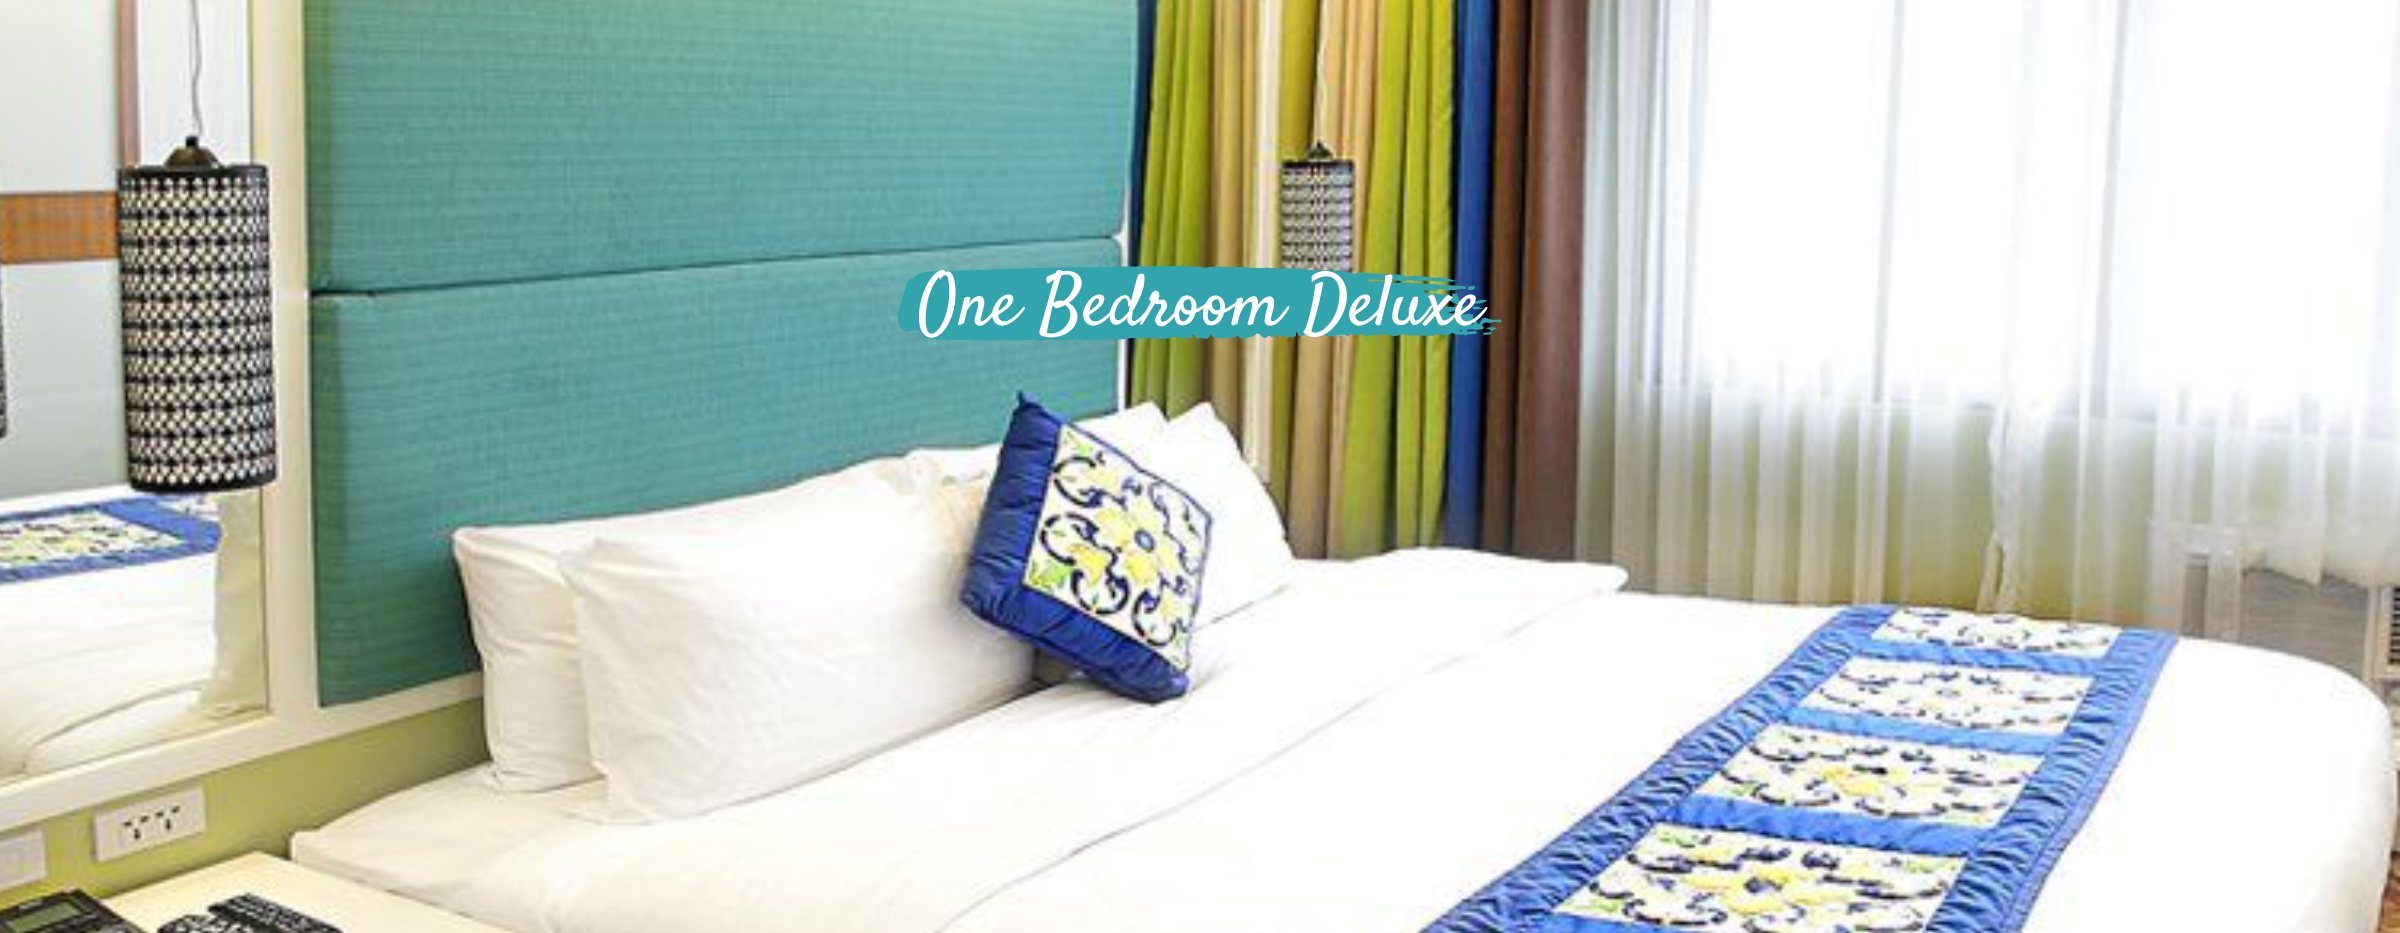 Queen-sized bed inside a room in Parque Espana